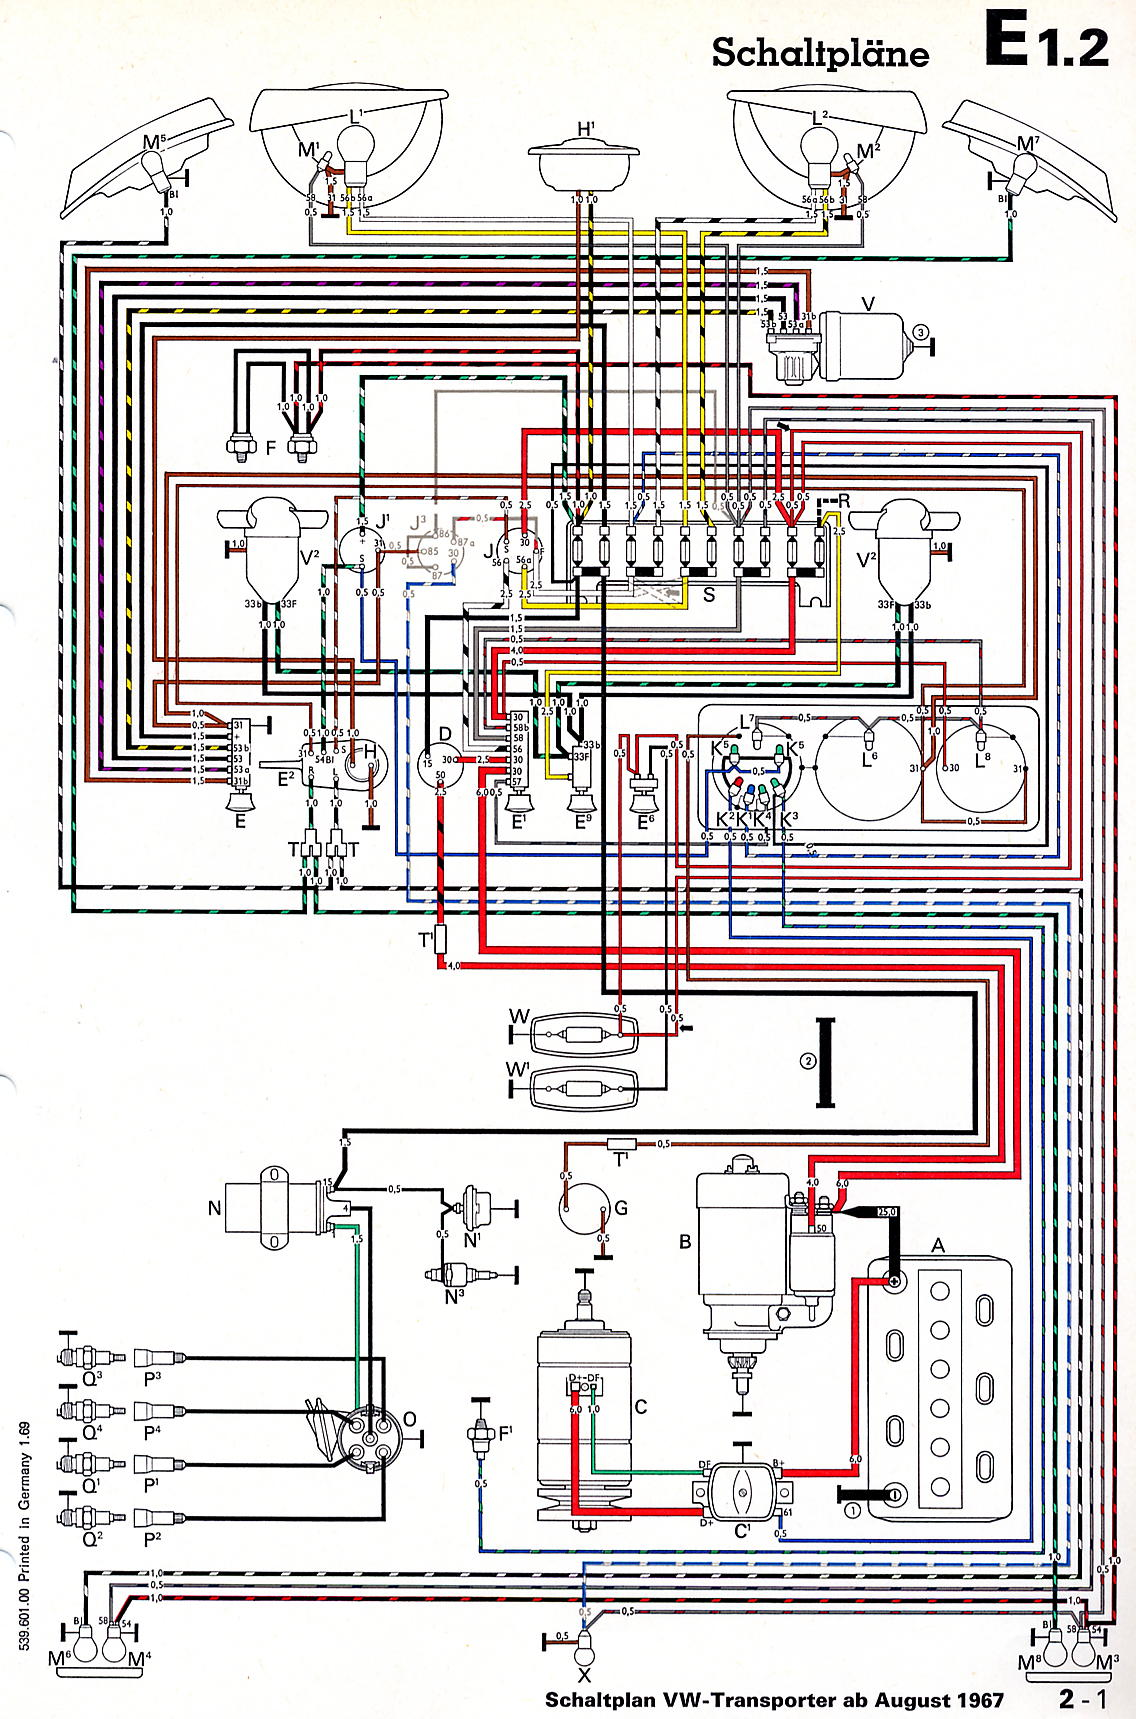 wiring diagram 68 vw bus thesamba com bay window bus view topic 69 electrical hacks 10 fuse box is correct for